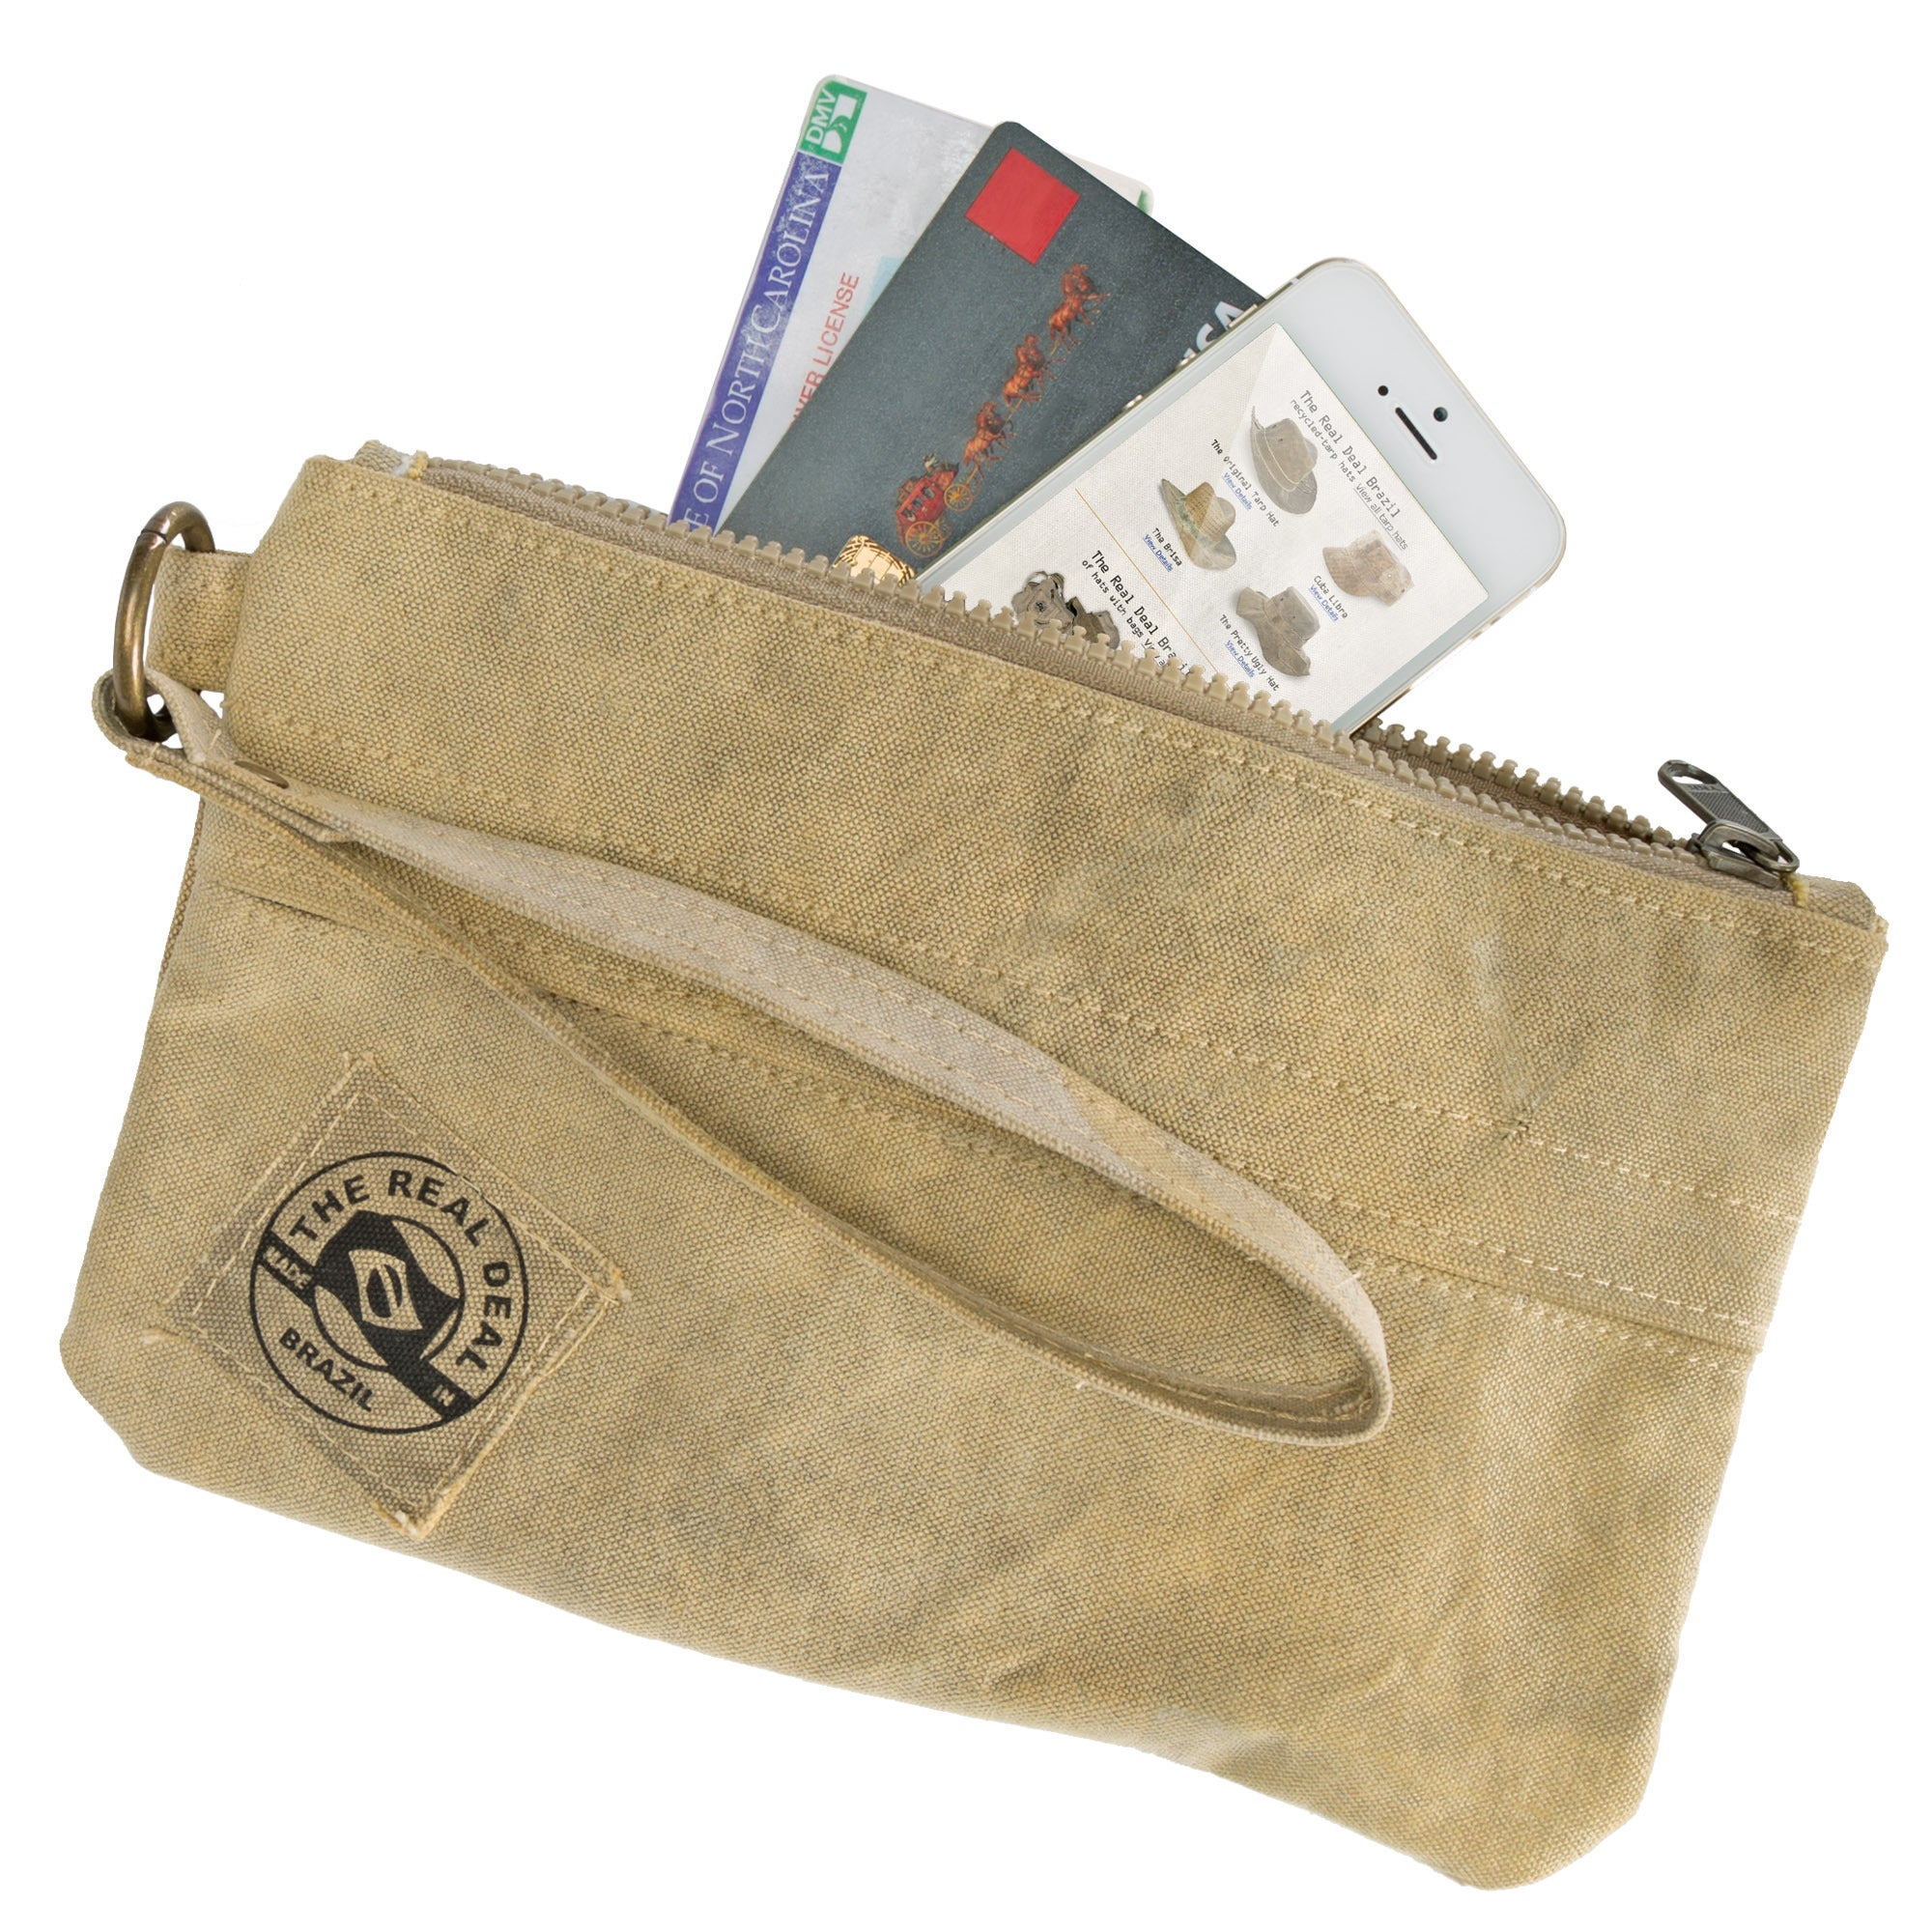 0b8a8dd522a Shop The Real Deal Brazil s Recycled Cotton Canvas Salinas Wristlet - Free  Shipping On Orders Over  45 - Overstock - 12683093